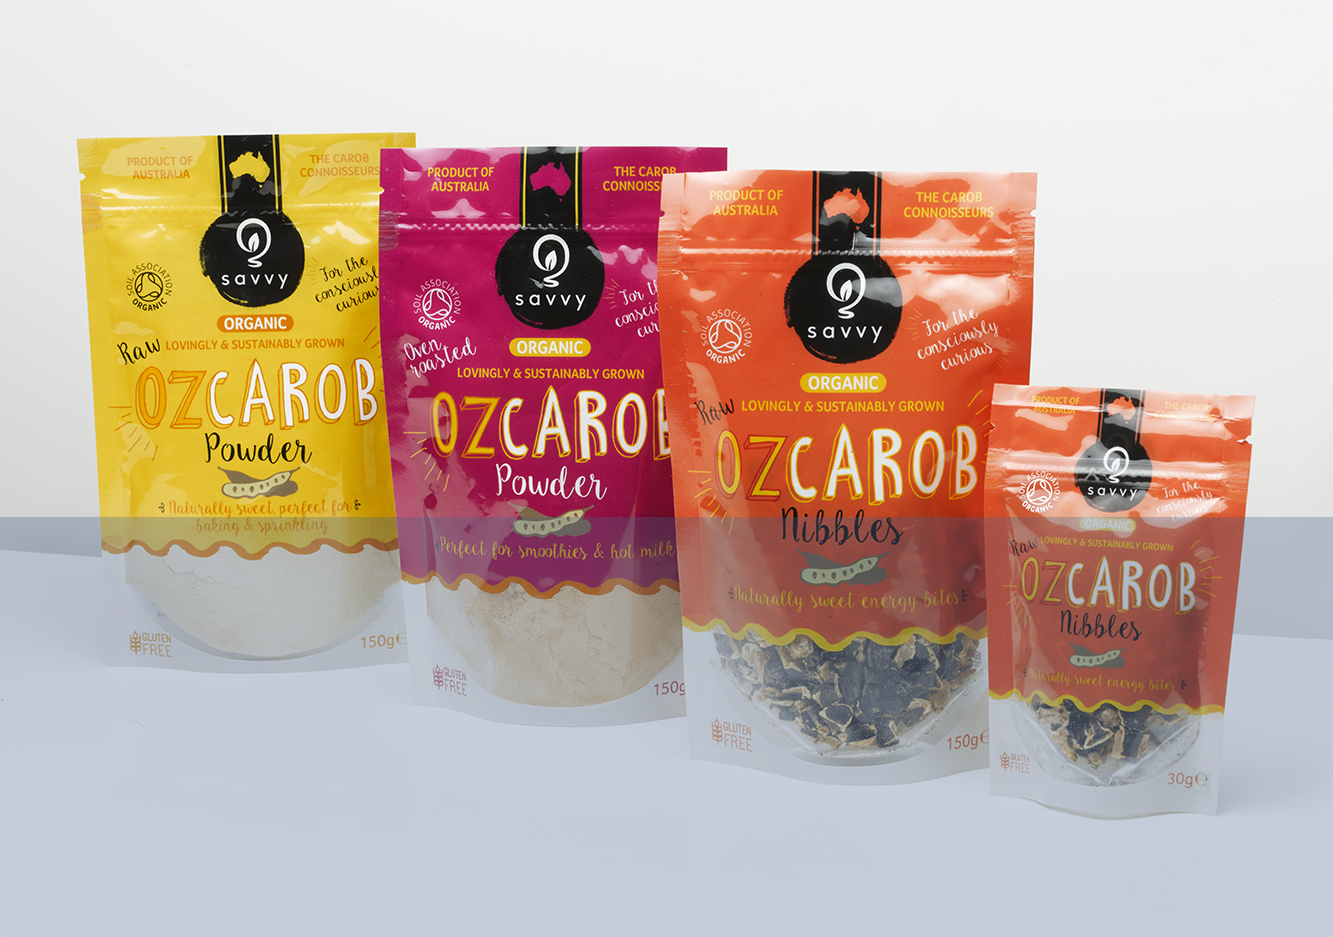 Creative food brand packaging design agency west london for Design companies london